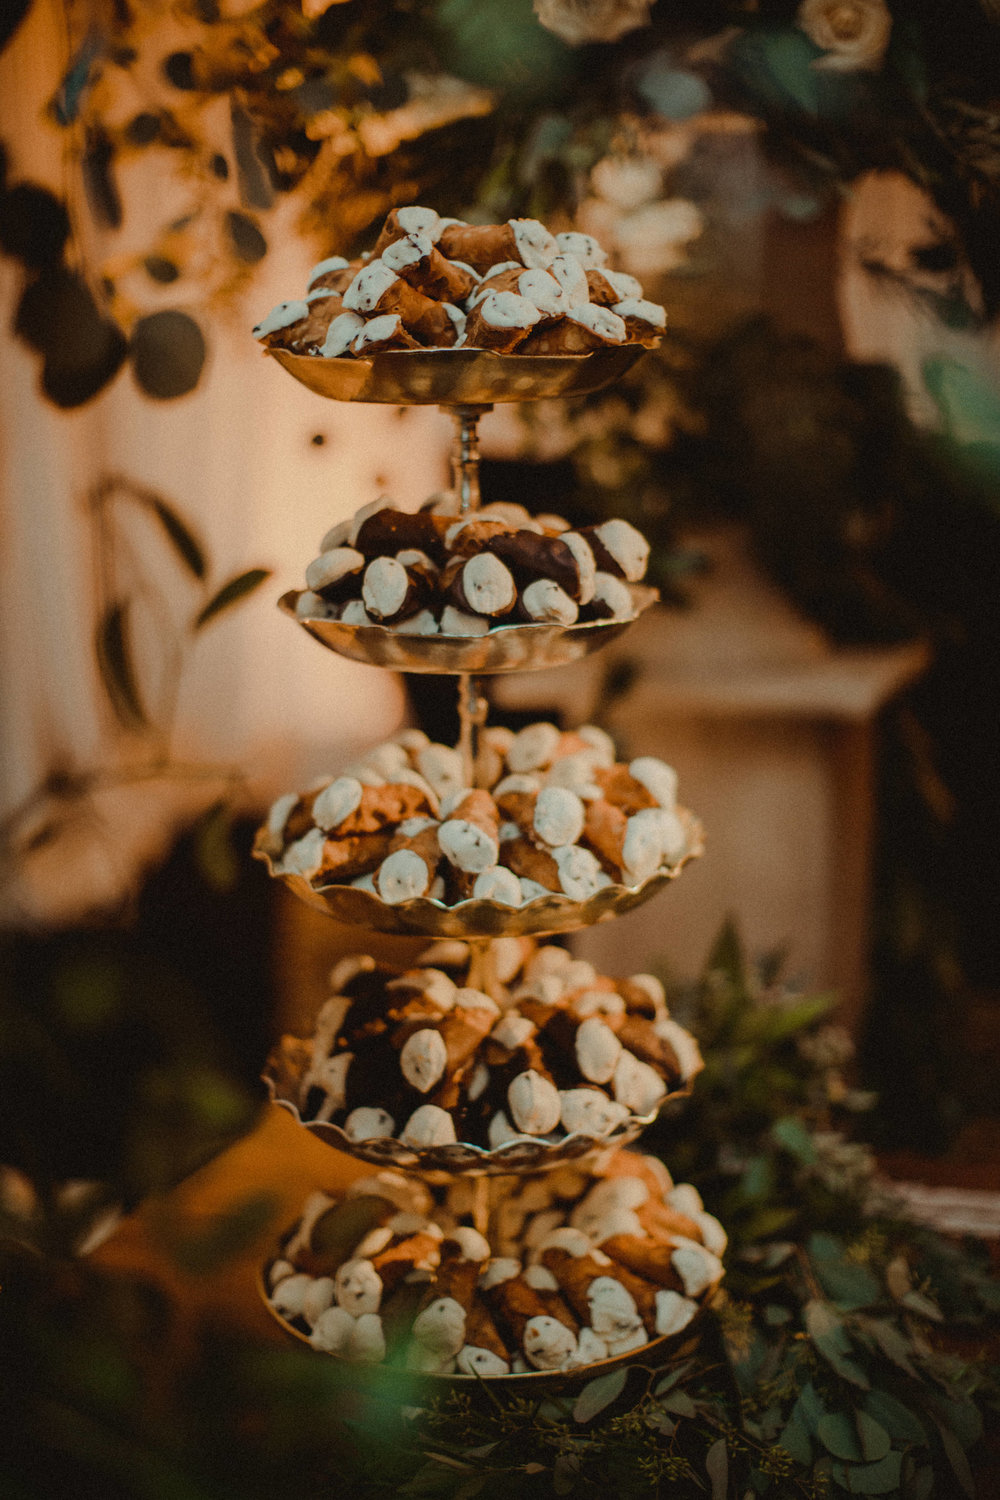 An Italian wedding is complete with a Cannoli Tower